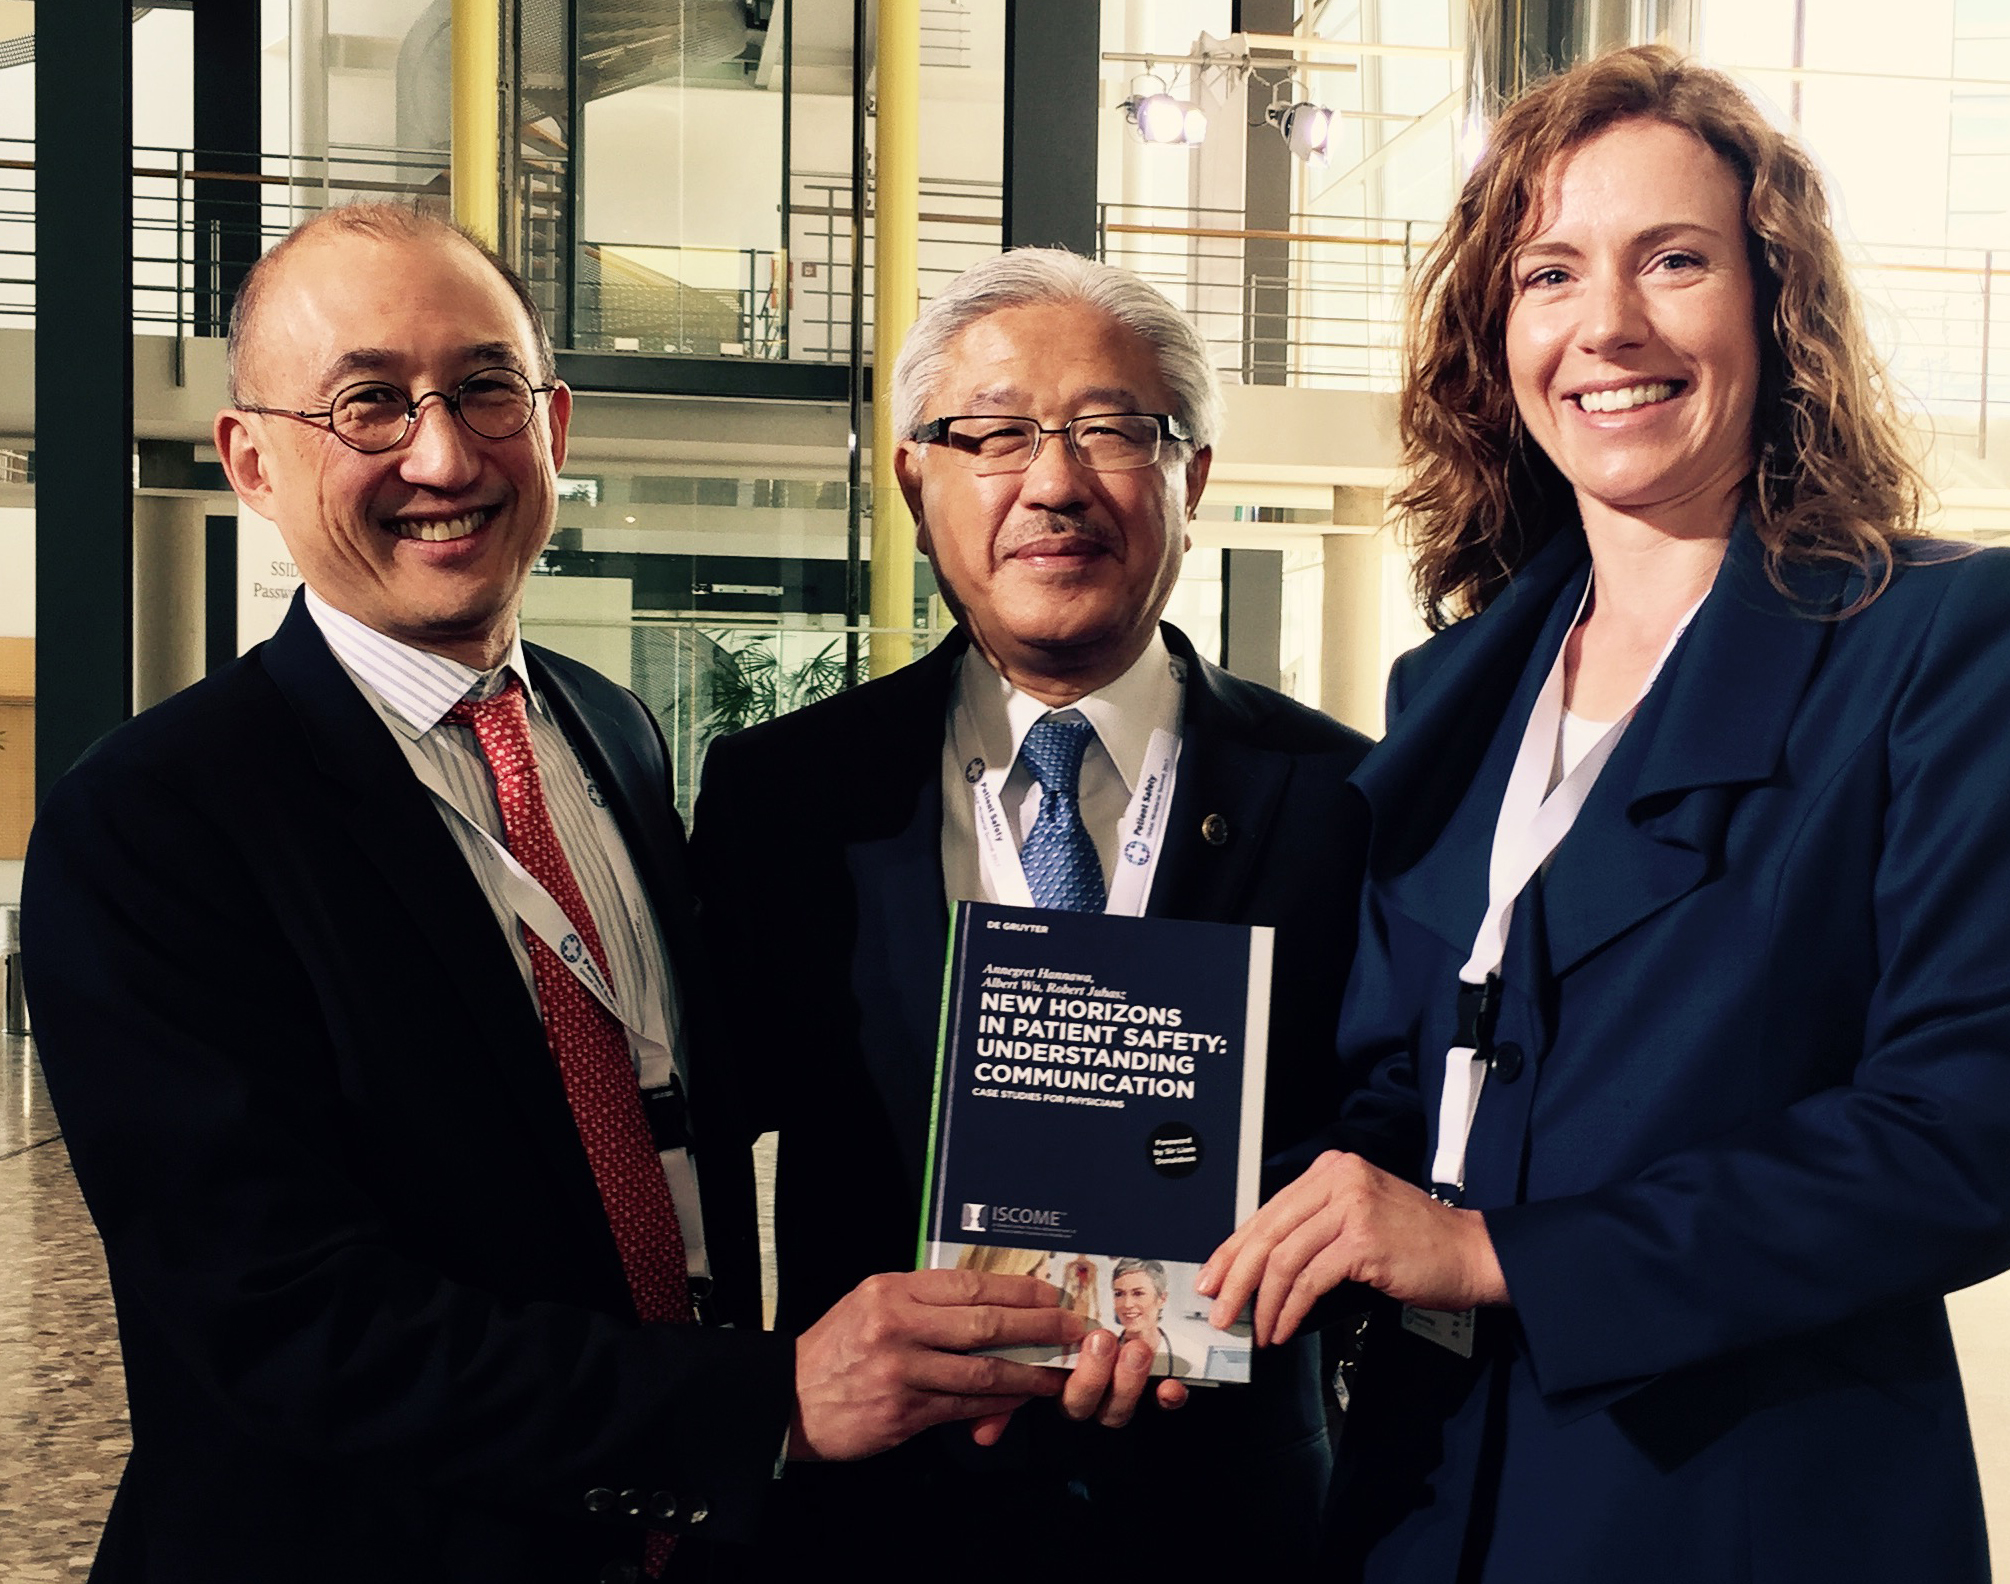 Hot off the press: With Albert Wu (left) and Victor Dzau (middle) at the Ministerial Patient Safety Summit 2017 in Bonn, Germany.